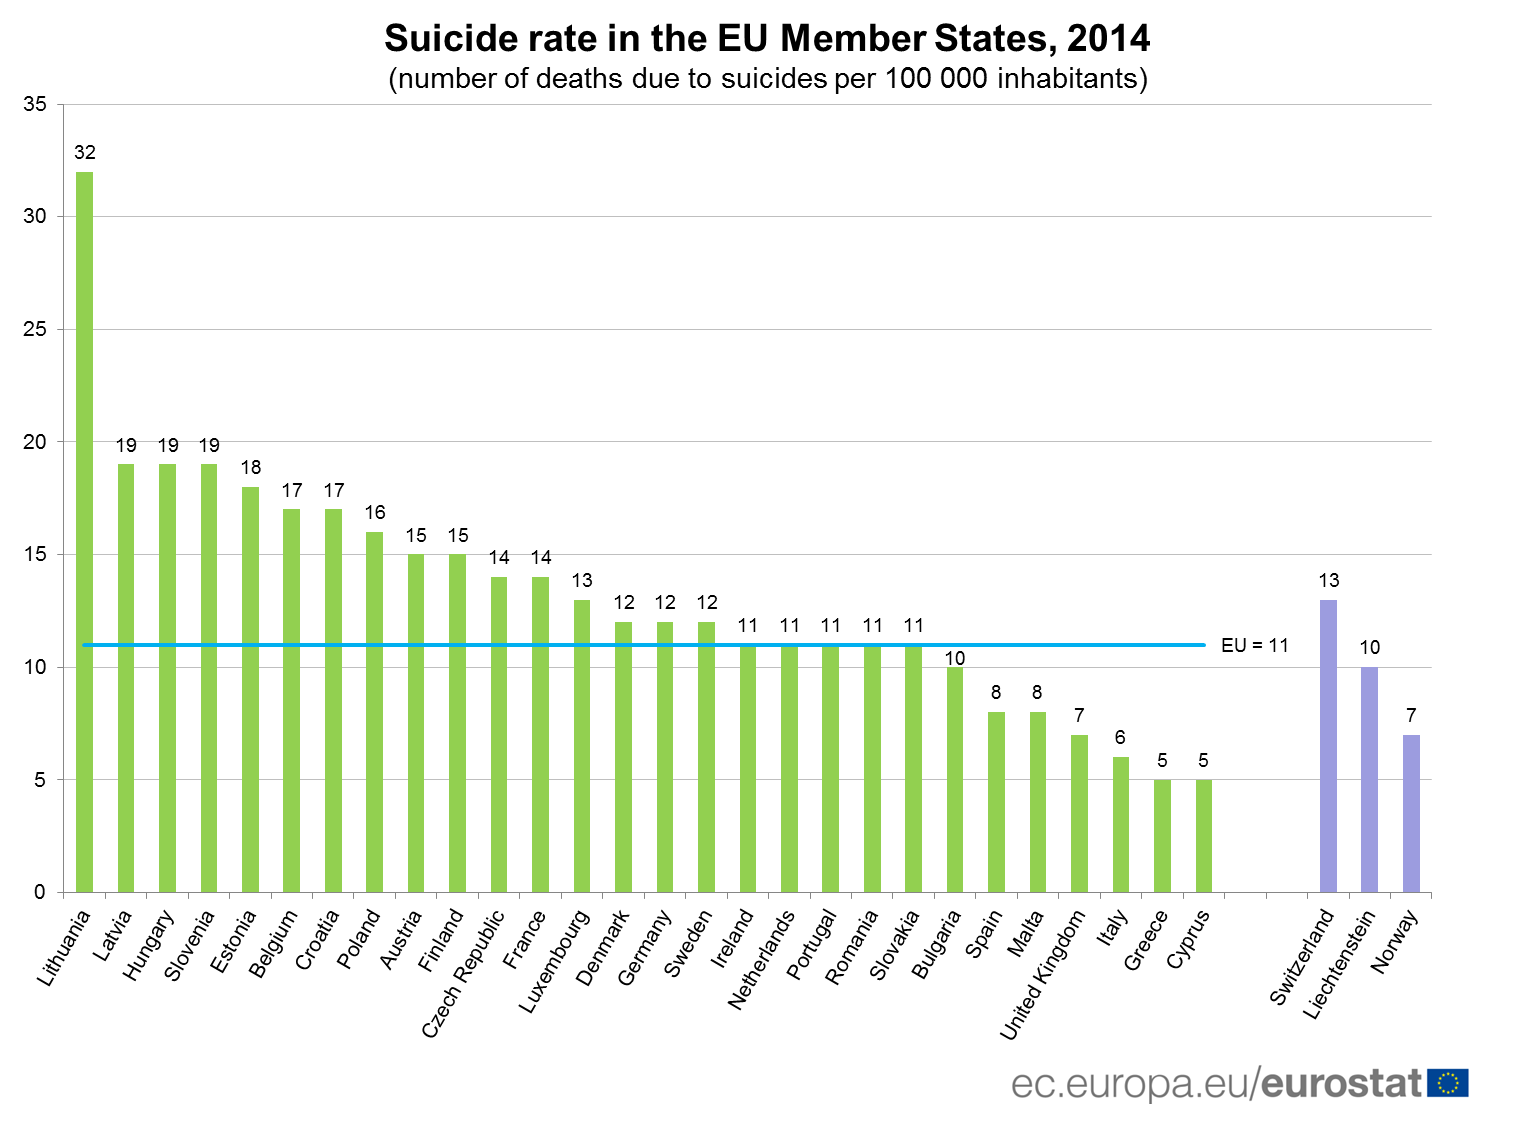 Suicide rate in the EU MS, 2014